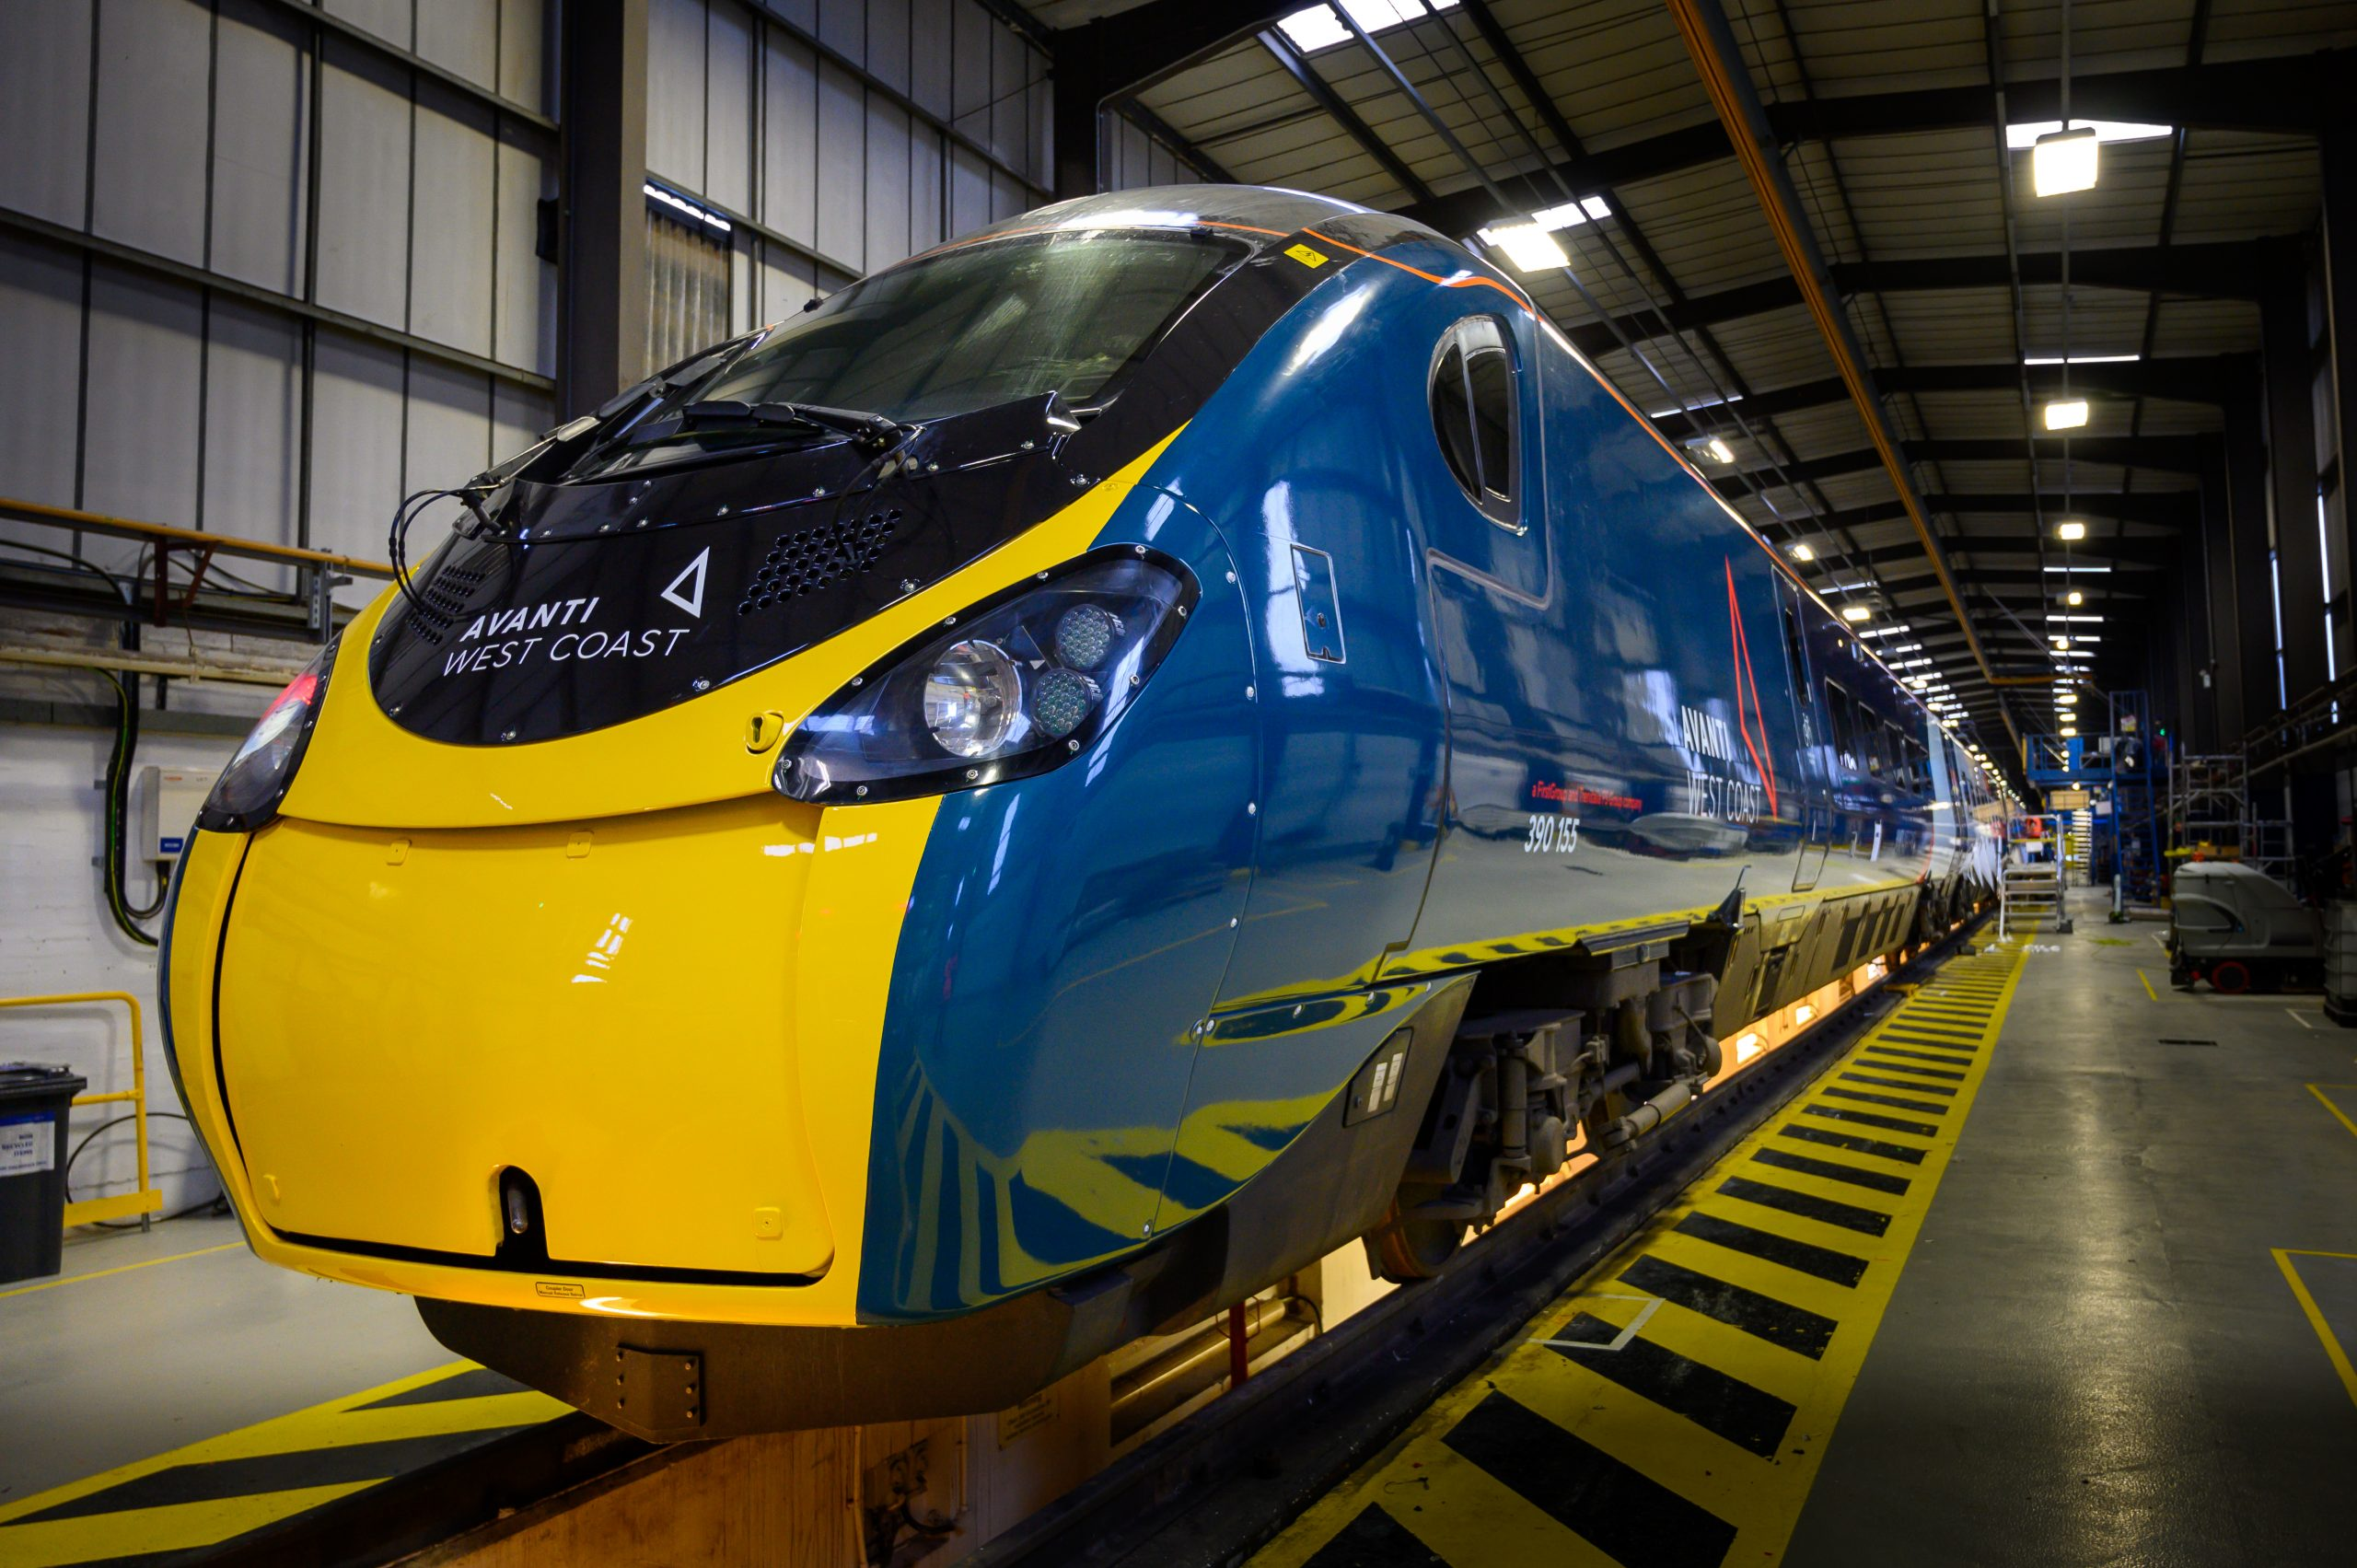 Our industry partners Avanti West Coast and Network Rail